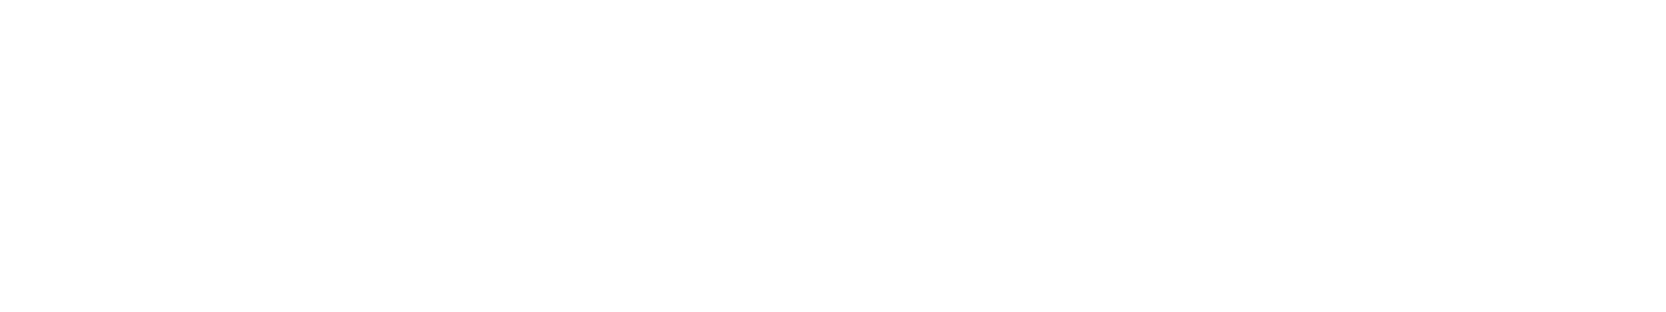 Latest Update Today